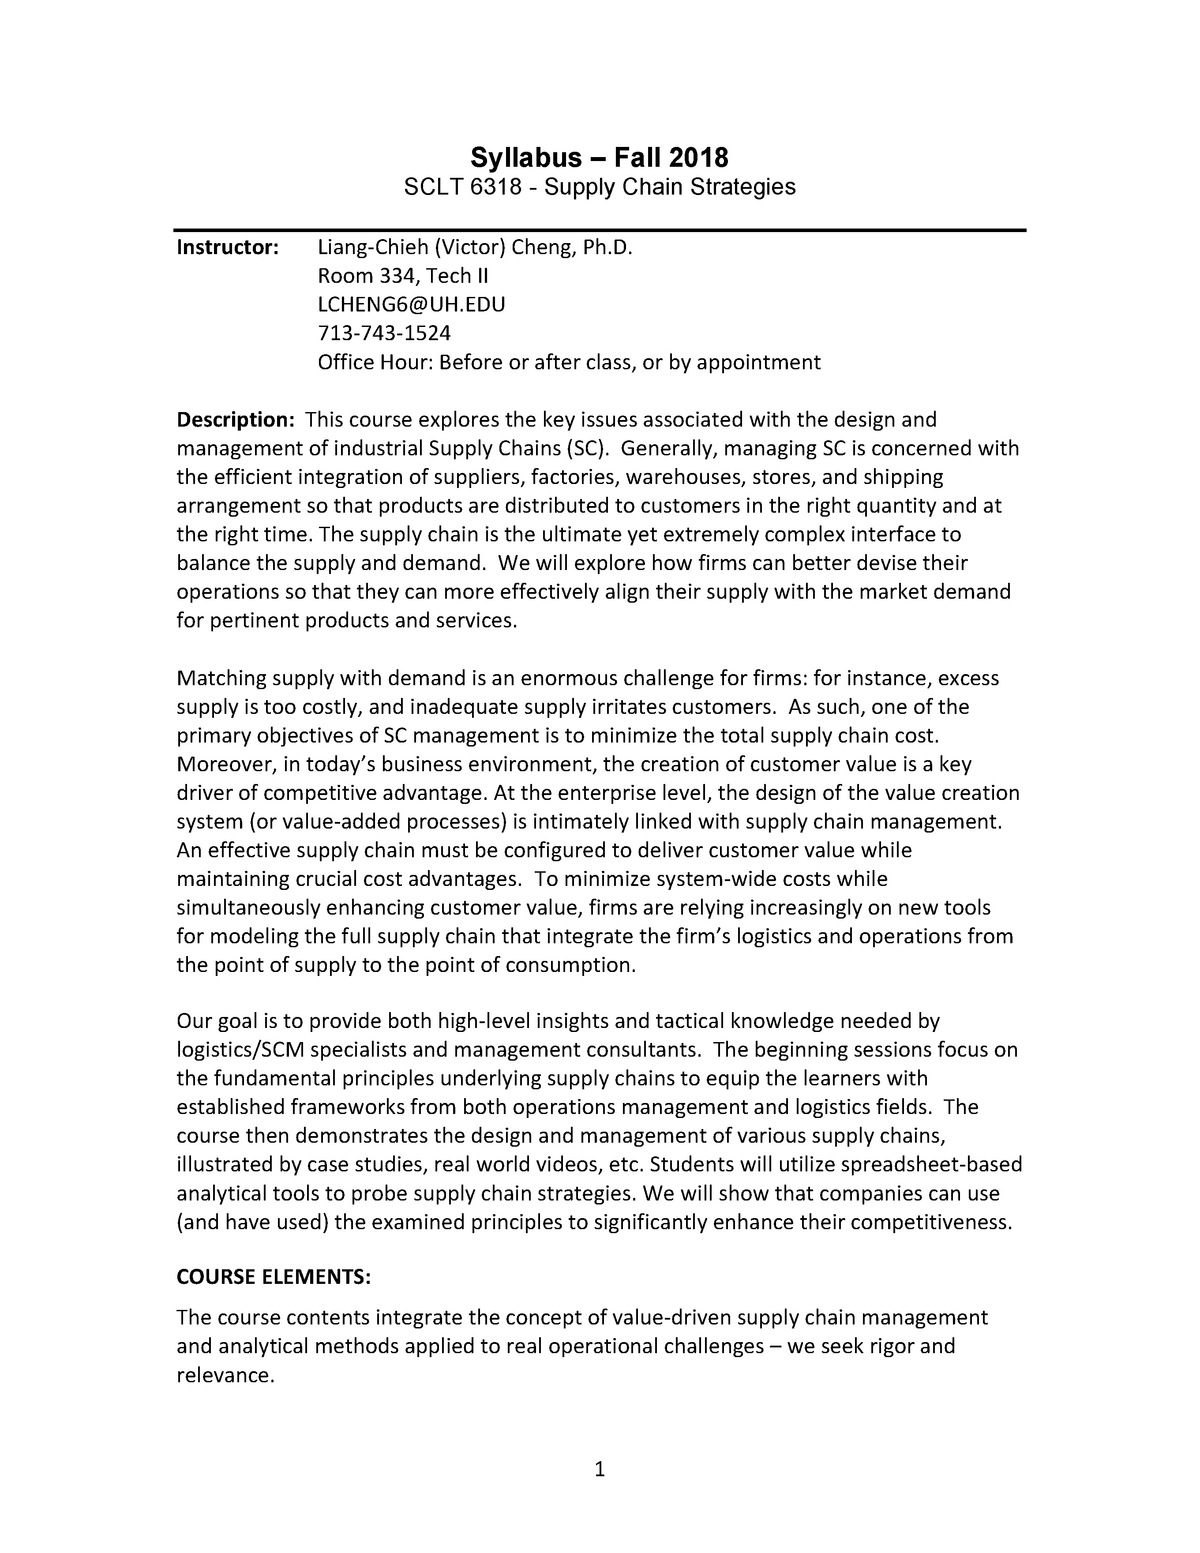 Syllabus SCLT6318 - SCLT 6318 Supply Chain Strategies - UH